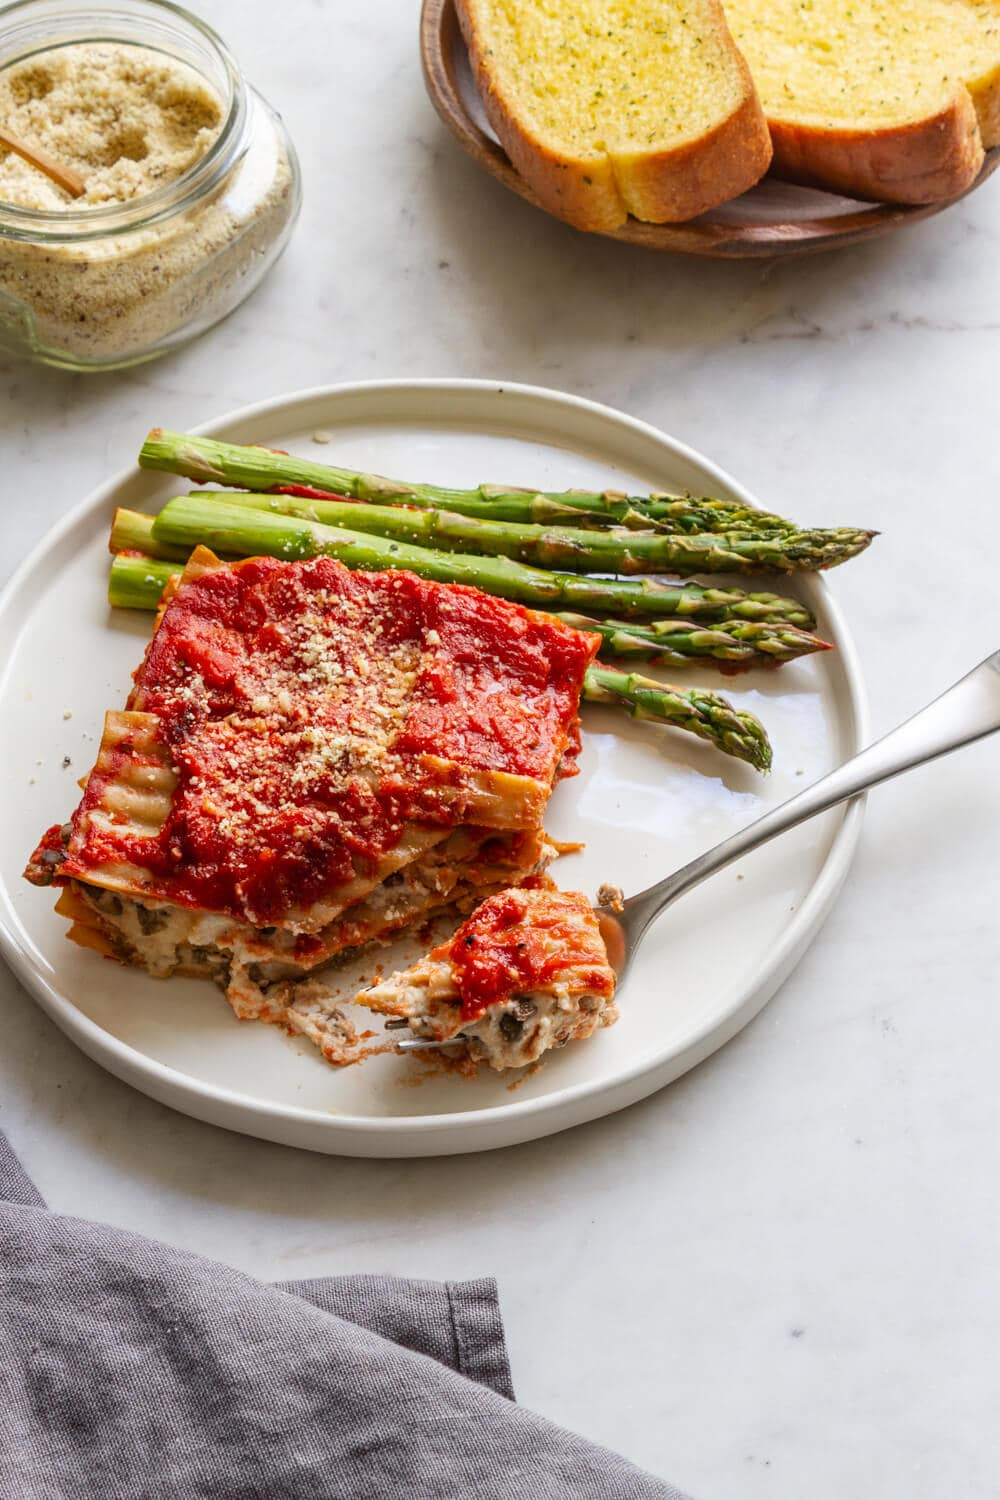 side view of a plate with a slice of simple vegan lasagna and asparagus, with almond parmesan and bread on the side